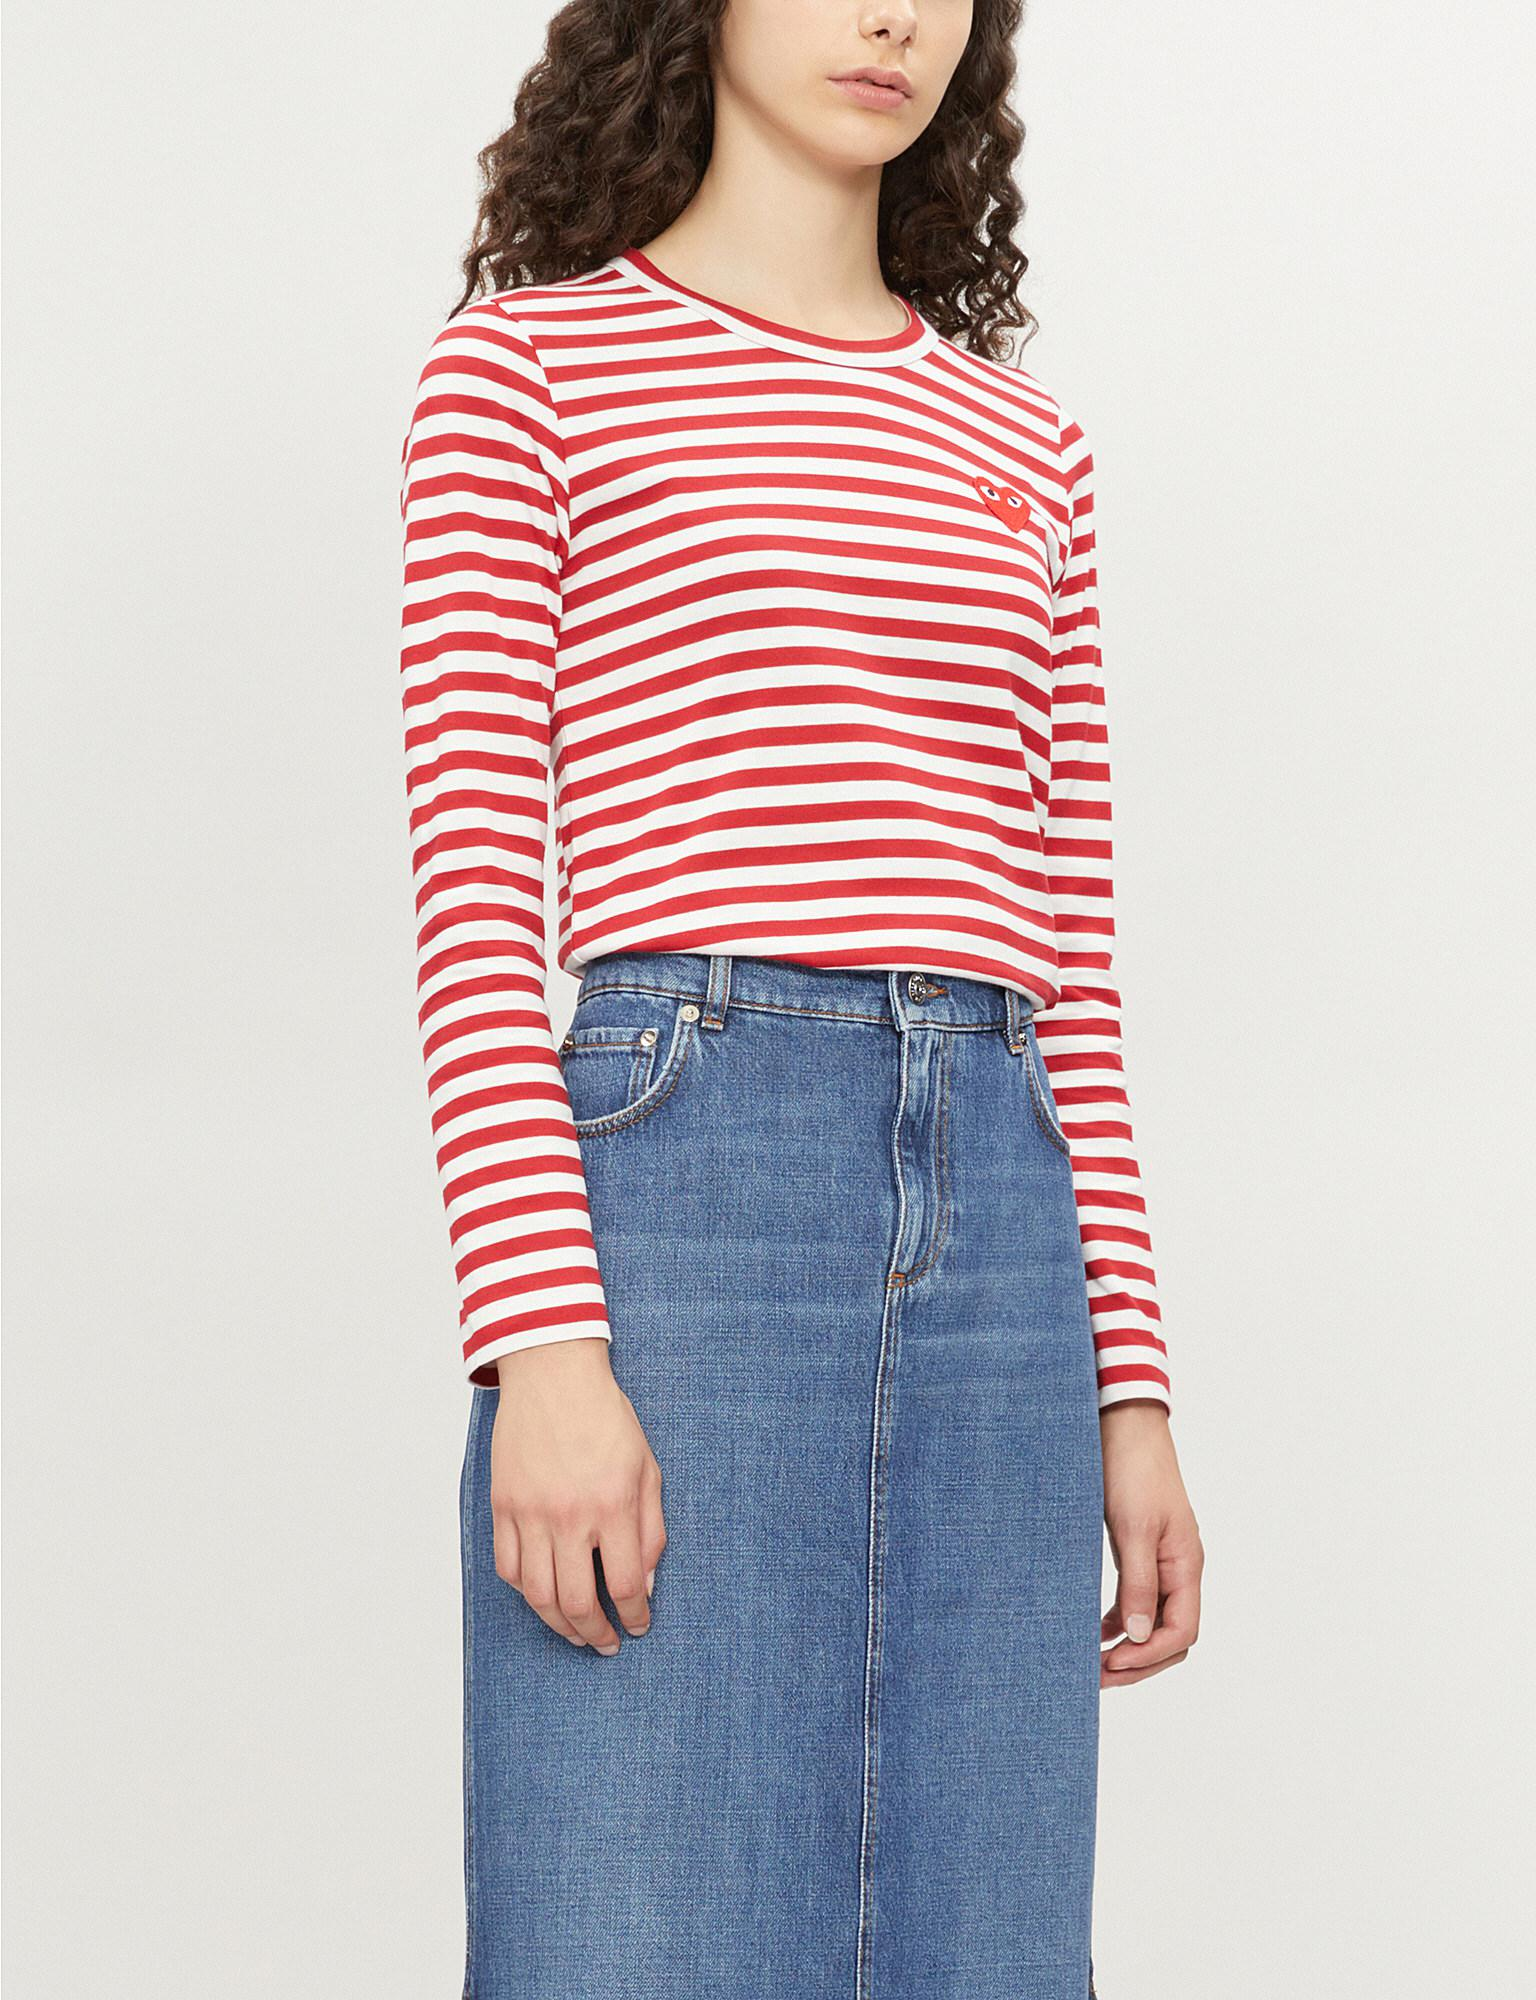 42416e30bdc COMME DES GARÇONS PLAY. Women s Ladies Red And White Heart Patch Striped  Cotton-jersey Top